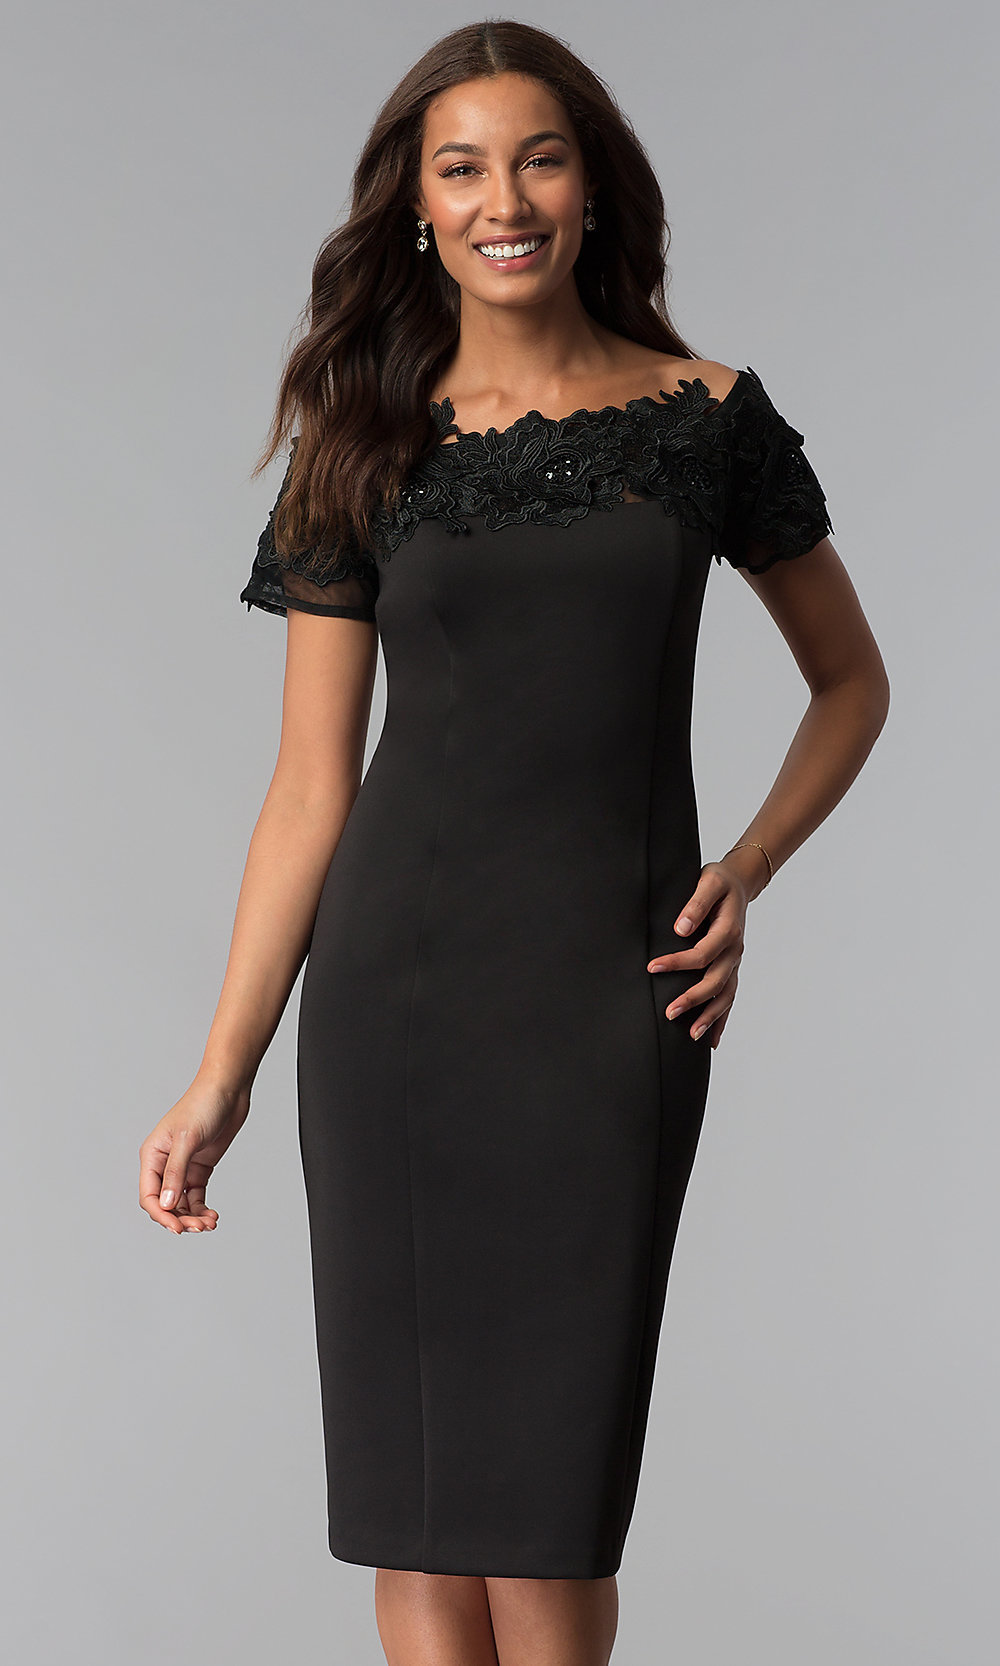 Off The Shoulder Short Black Wedding Guest Dress